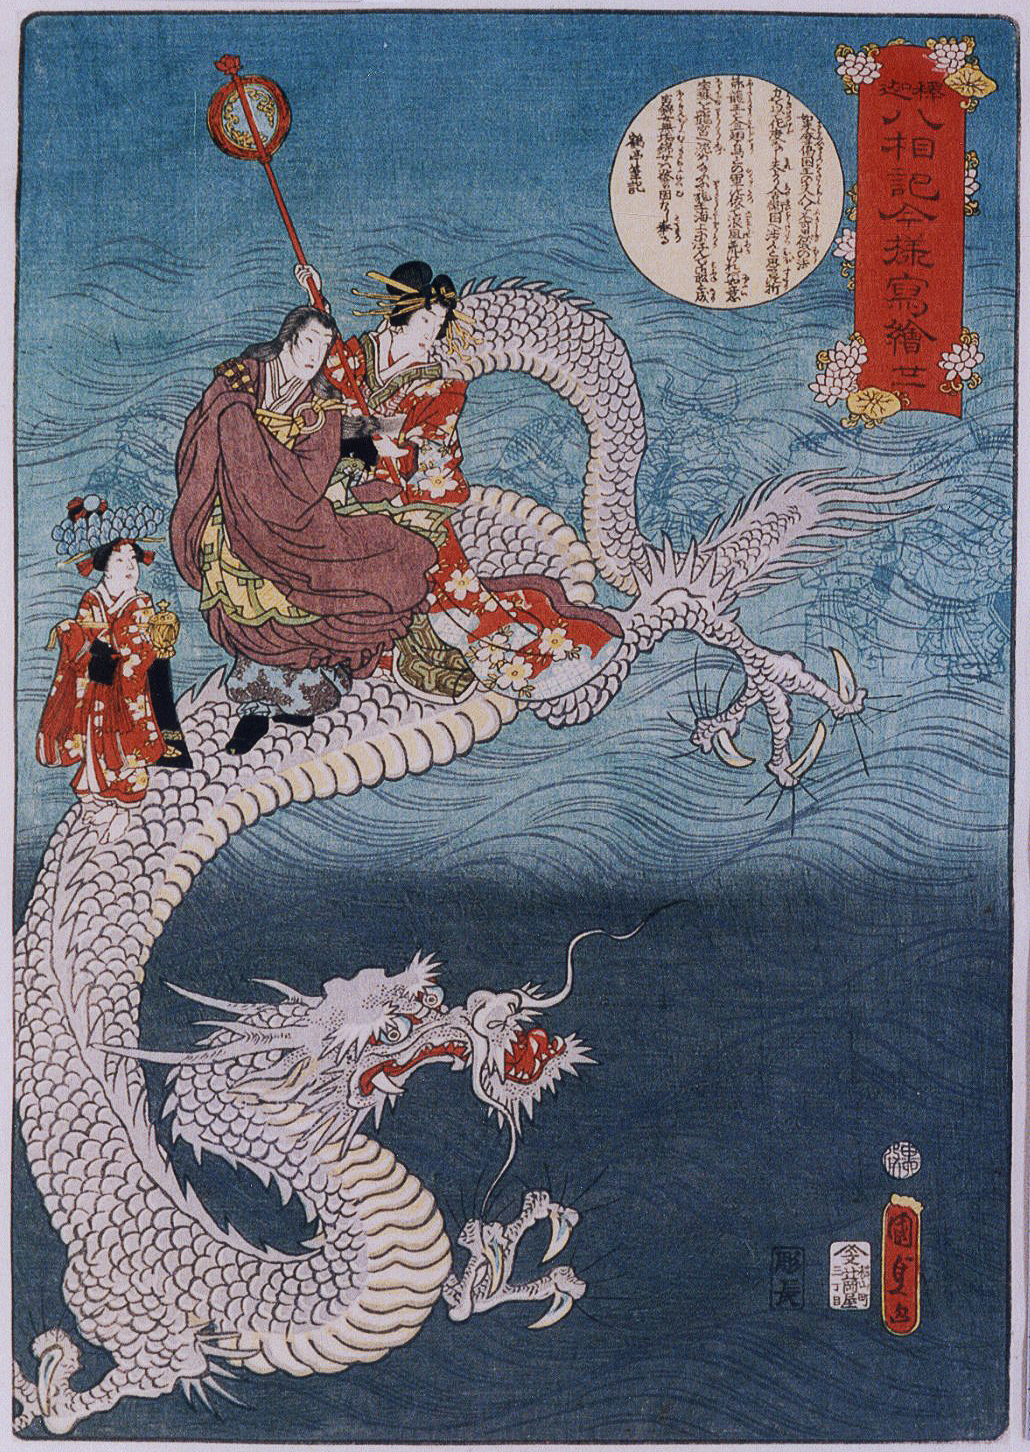 https://upload.wikimedia.org/wikipedia/commons/1/1b/Kunisada_II_The_Dragon.jpg